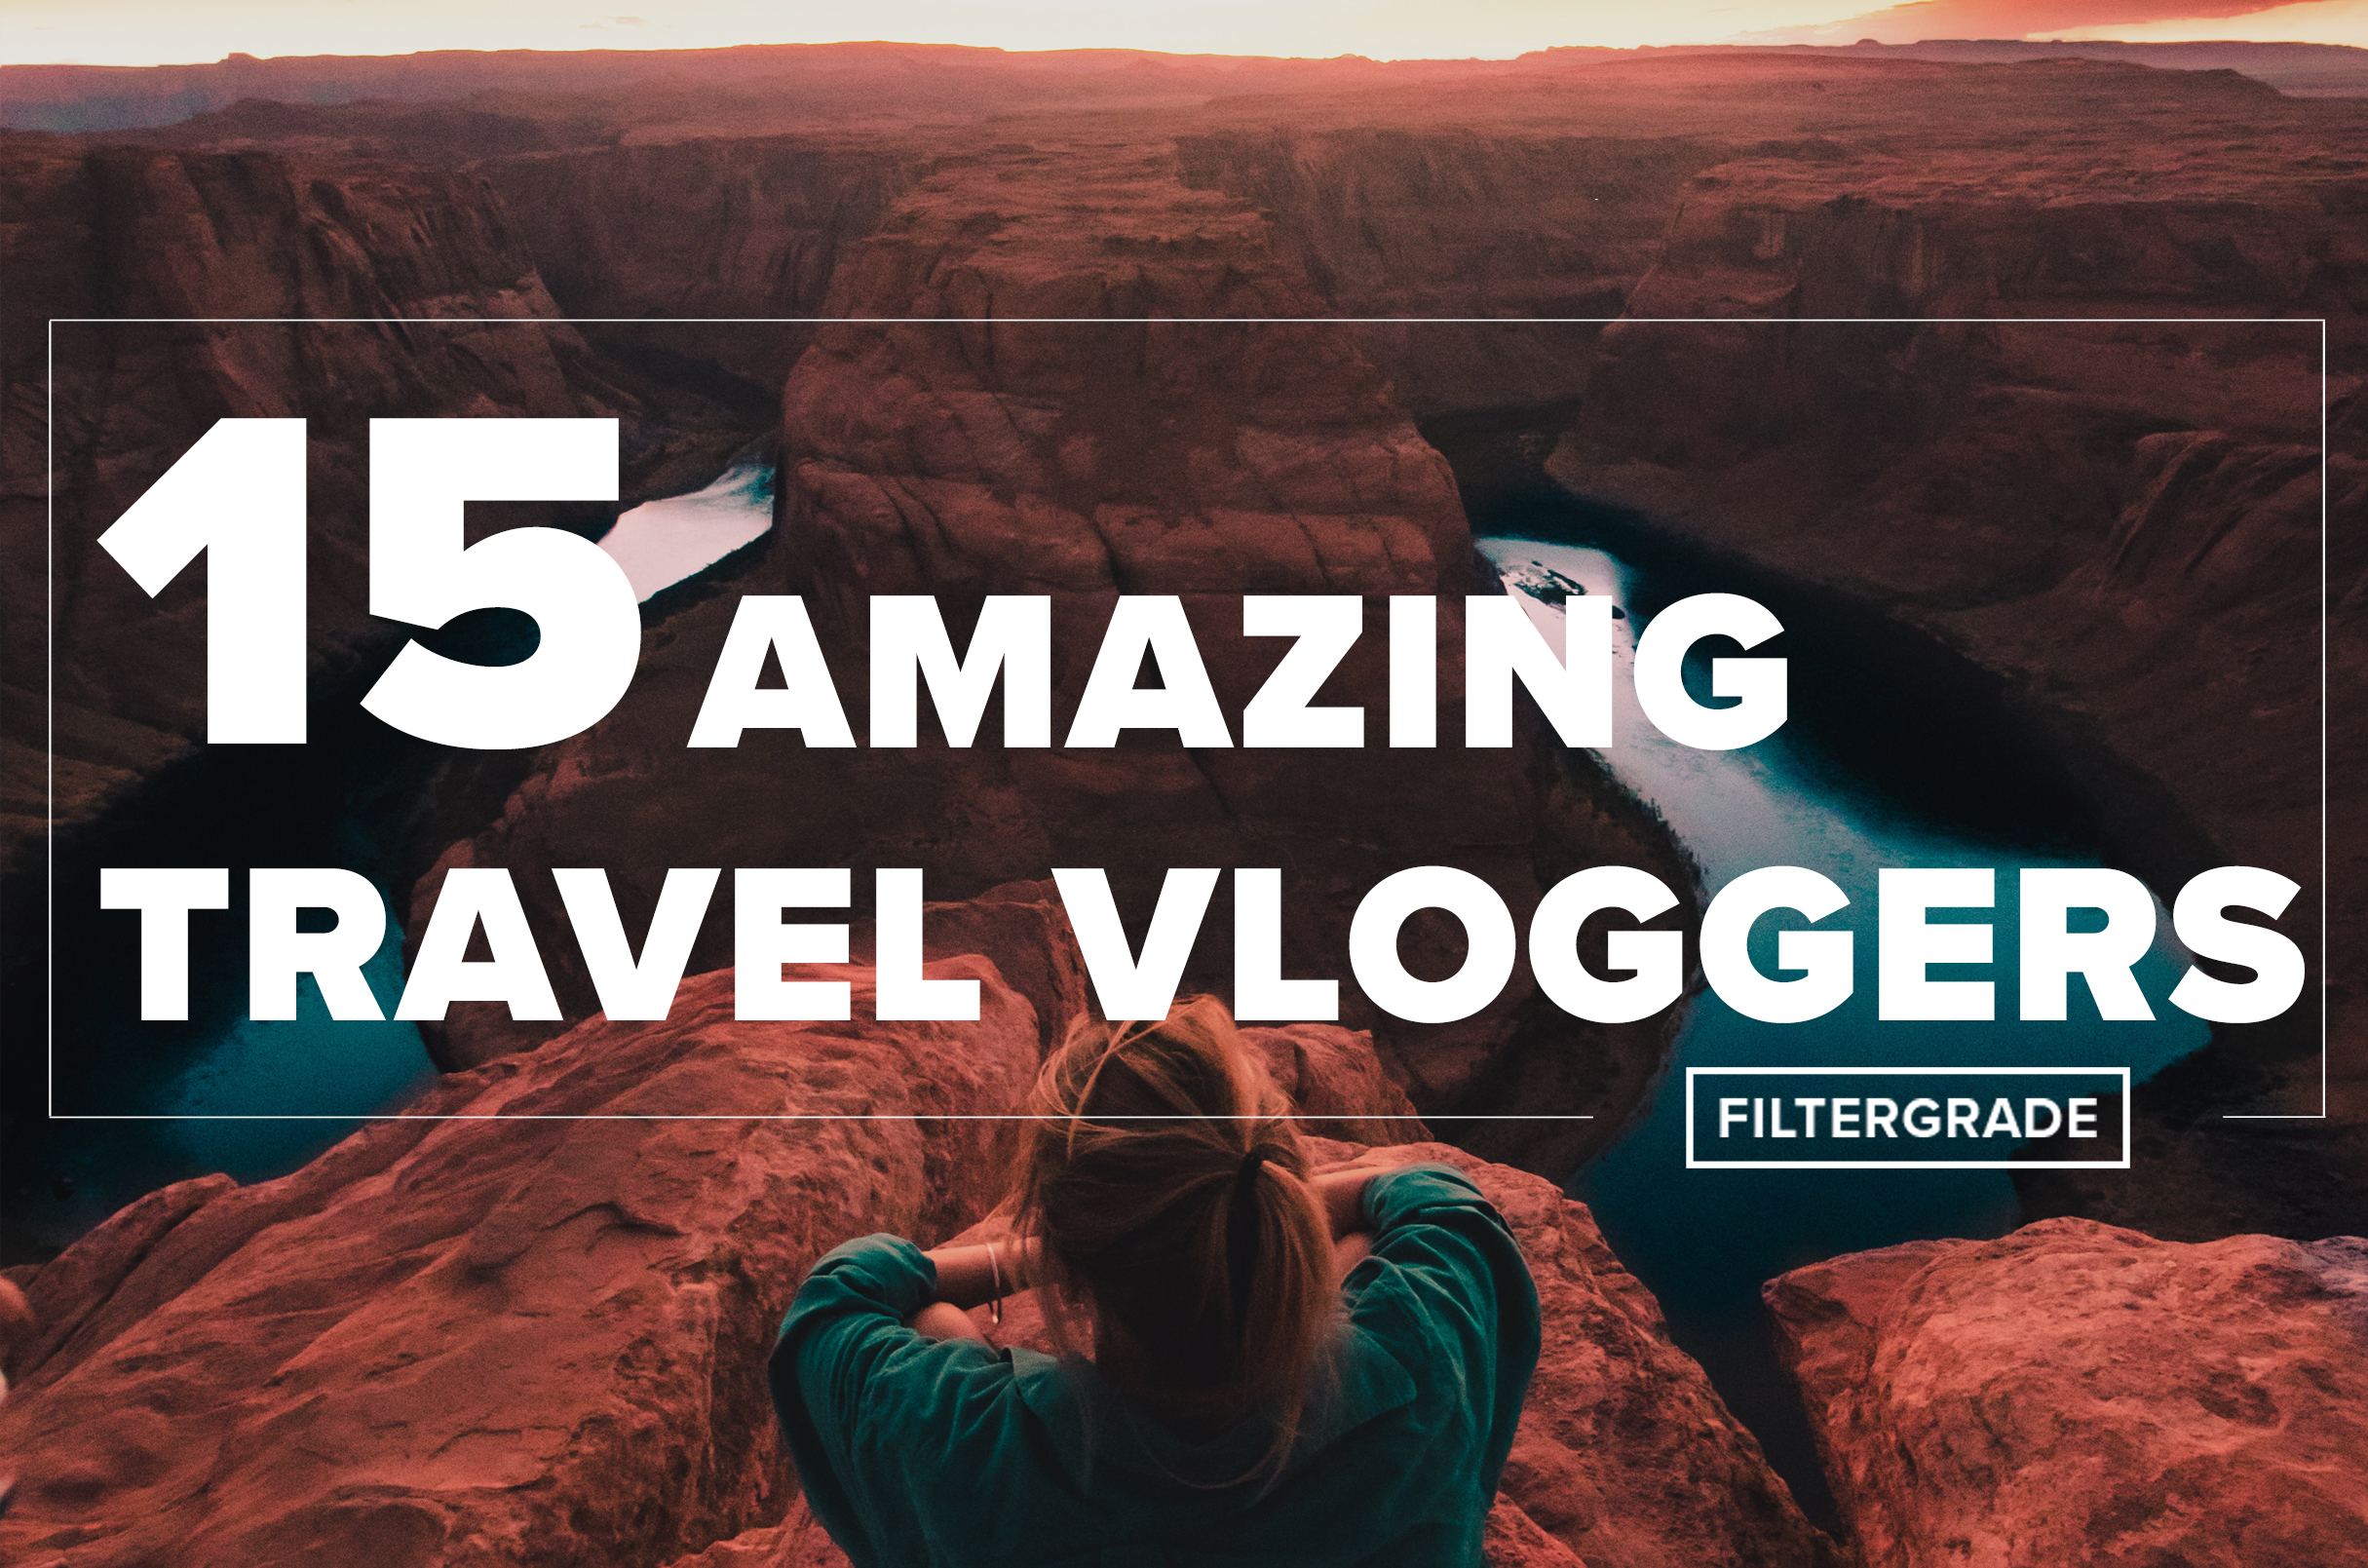 1 Amazing Travel Vloggers - FilterGrade